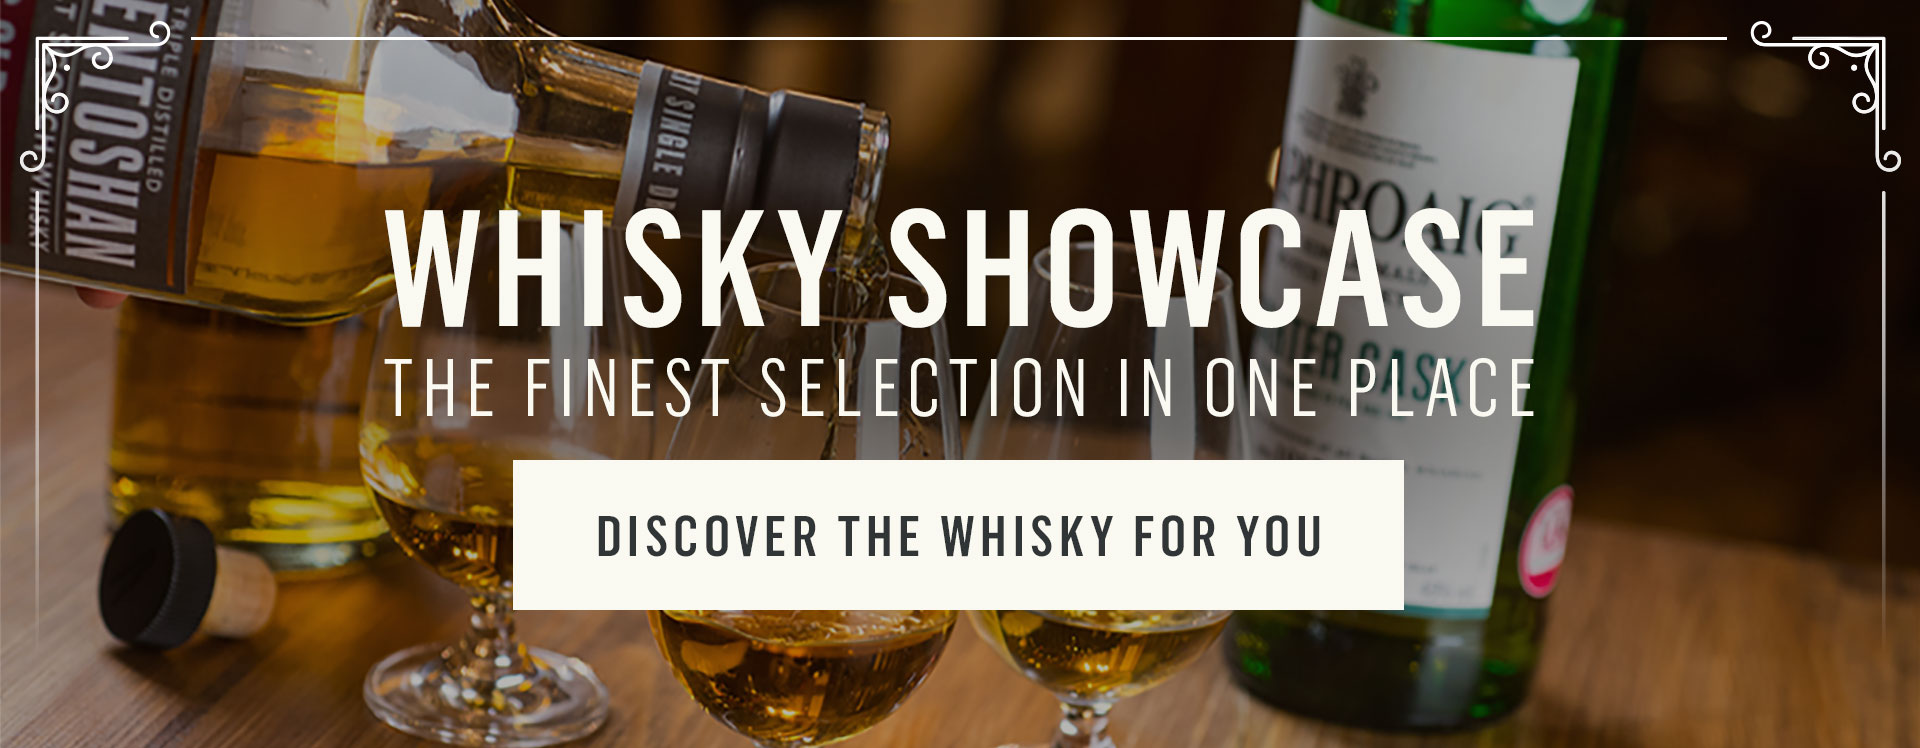 Whisky Showcase at The Old Buttermarket in Canterbury